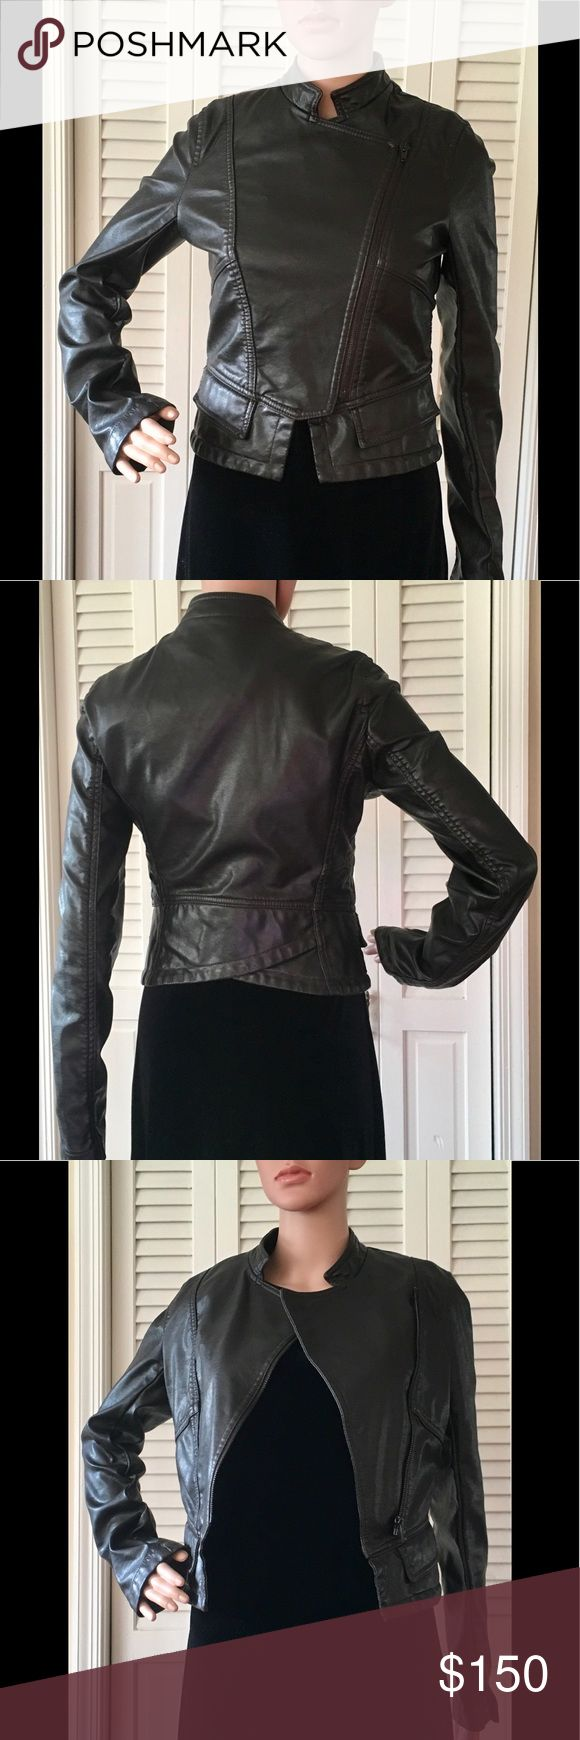 FRENCH CONNECTION🌺Fabulous Vegan Leather Jacket! So Adorable!! Unique Details! LIKE NEW! French Connection Jackets & Coats